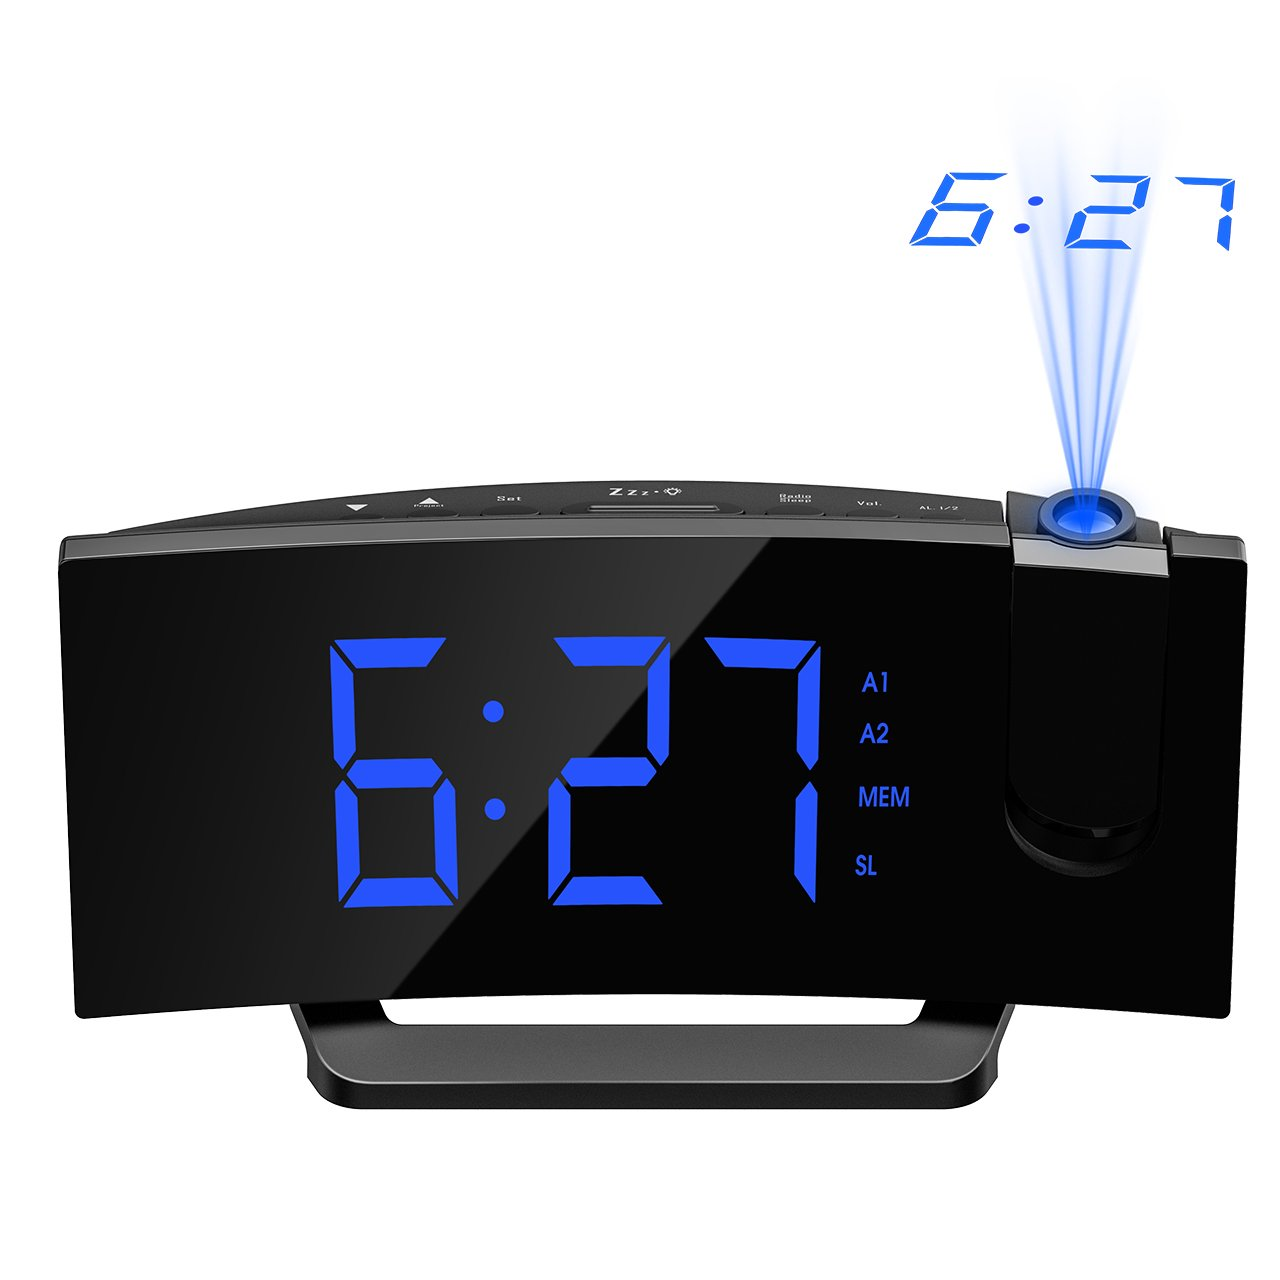 Mpow Projection Alarm Clock, Arc-shaped Projection Clocks with 5 Inch Dimmer LED Display, Digital Clock Radios for bedroom with Dual Alarm, 12/24 Hours, Backup Battery (Black-Blue)